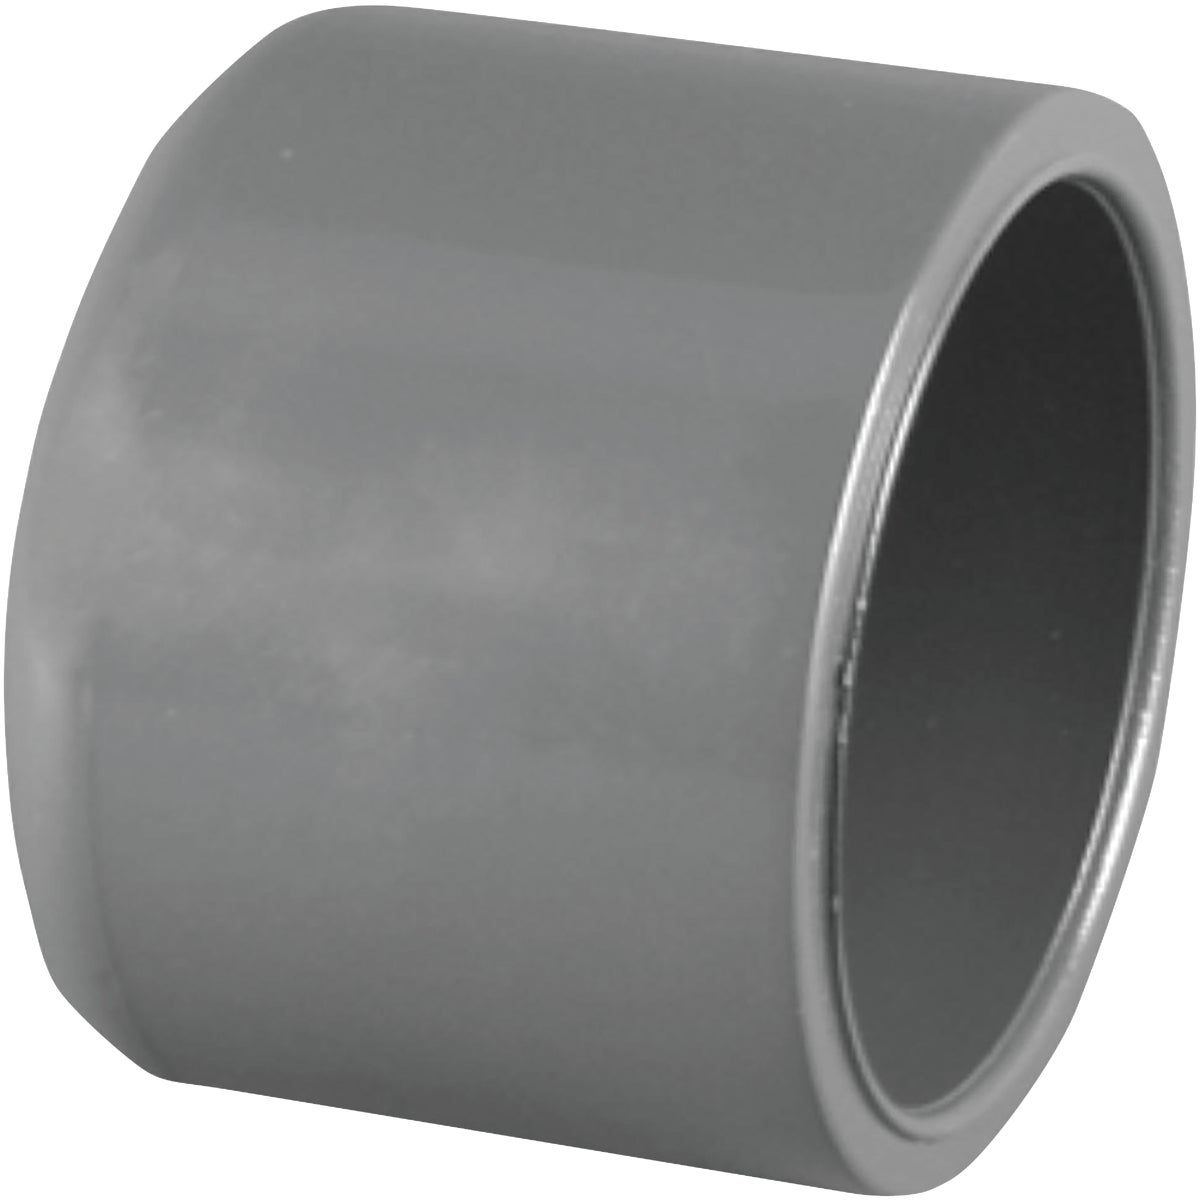 "2"" SCH80 PVC CAP - 301528 by Genova Inc"